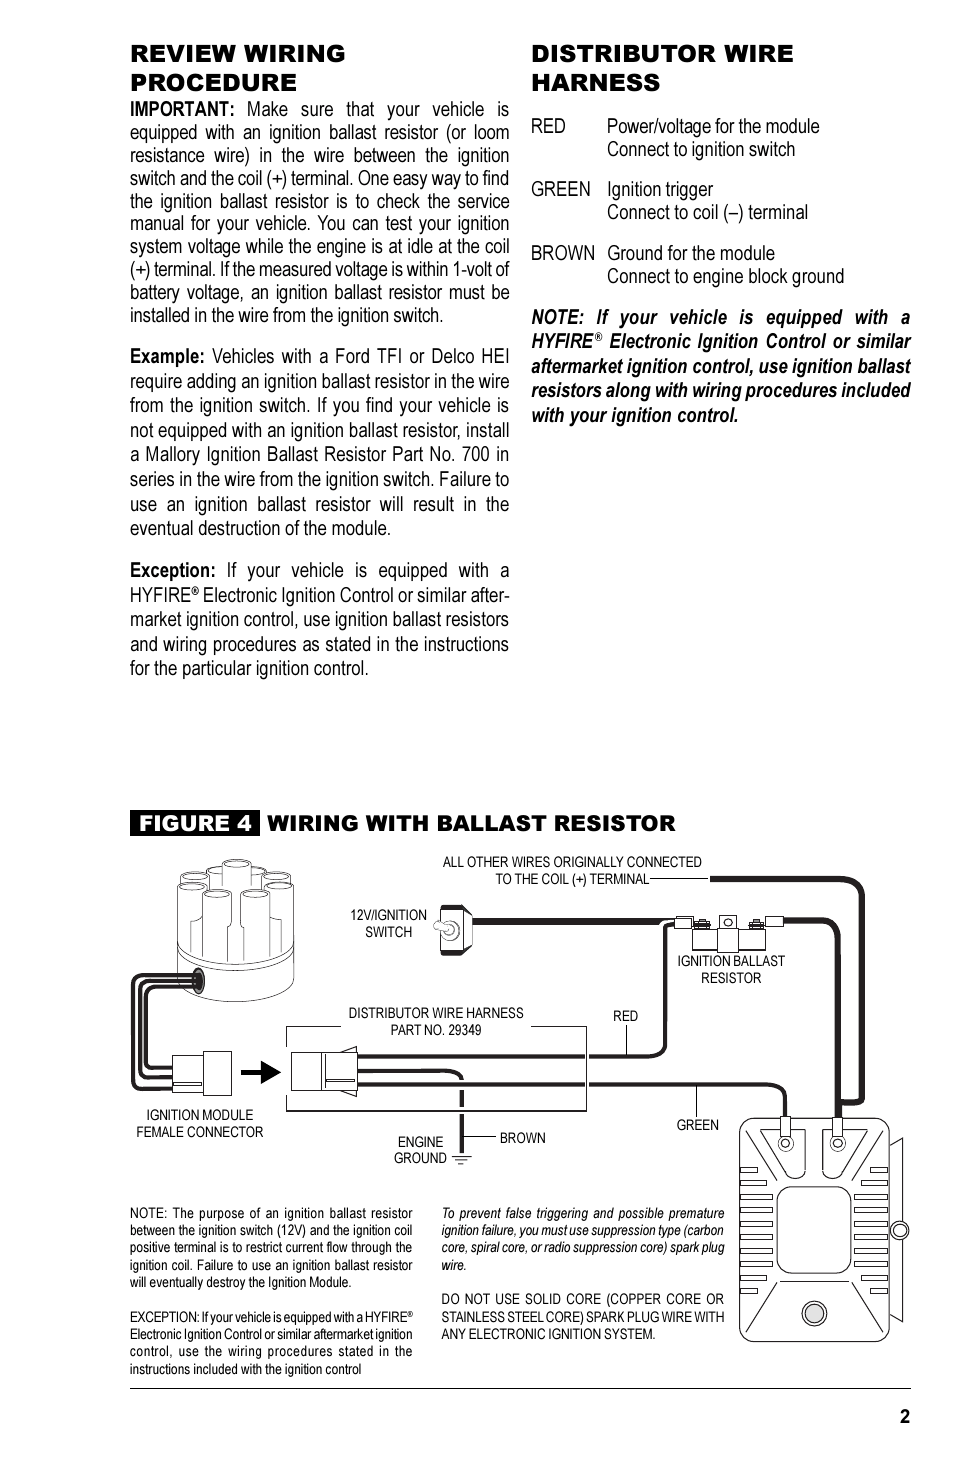 hight resolution of review wiring procedure distributor wire harness coil mallory ignition mallory magnetic breakerless ignition module 609 user manual page 3 4